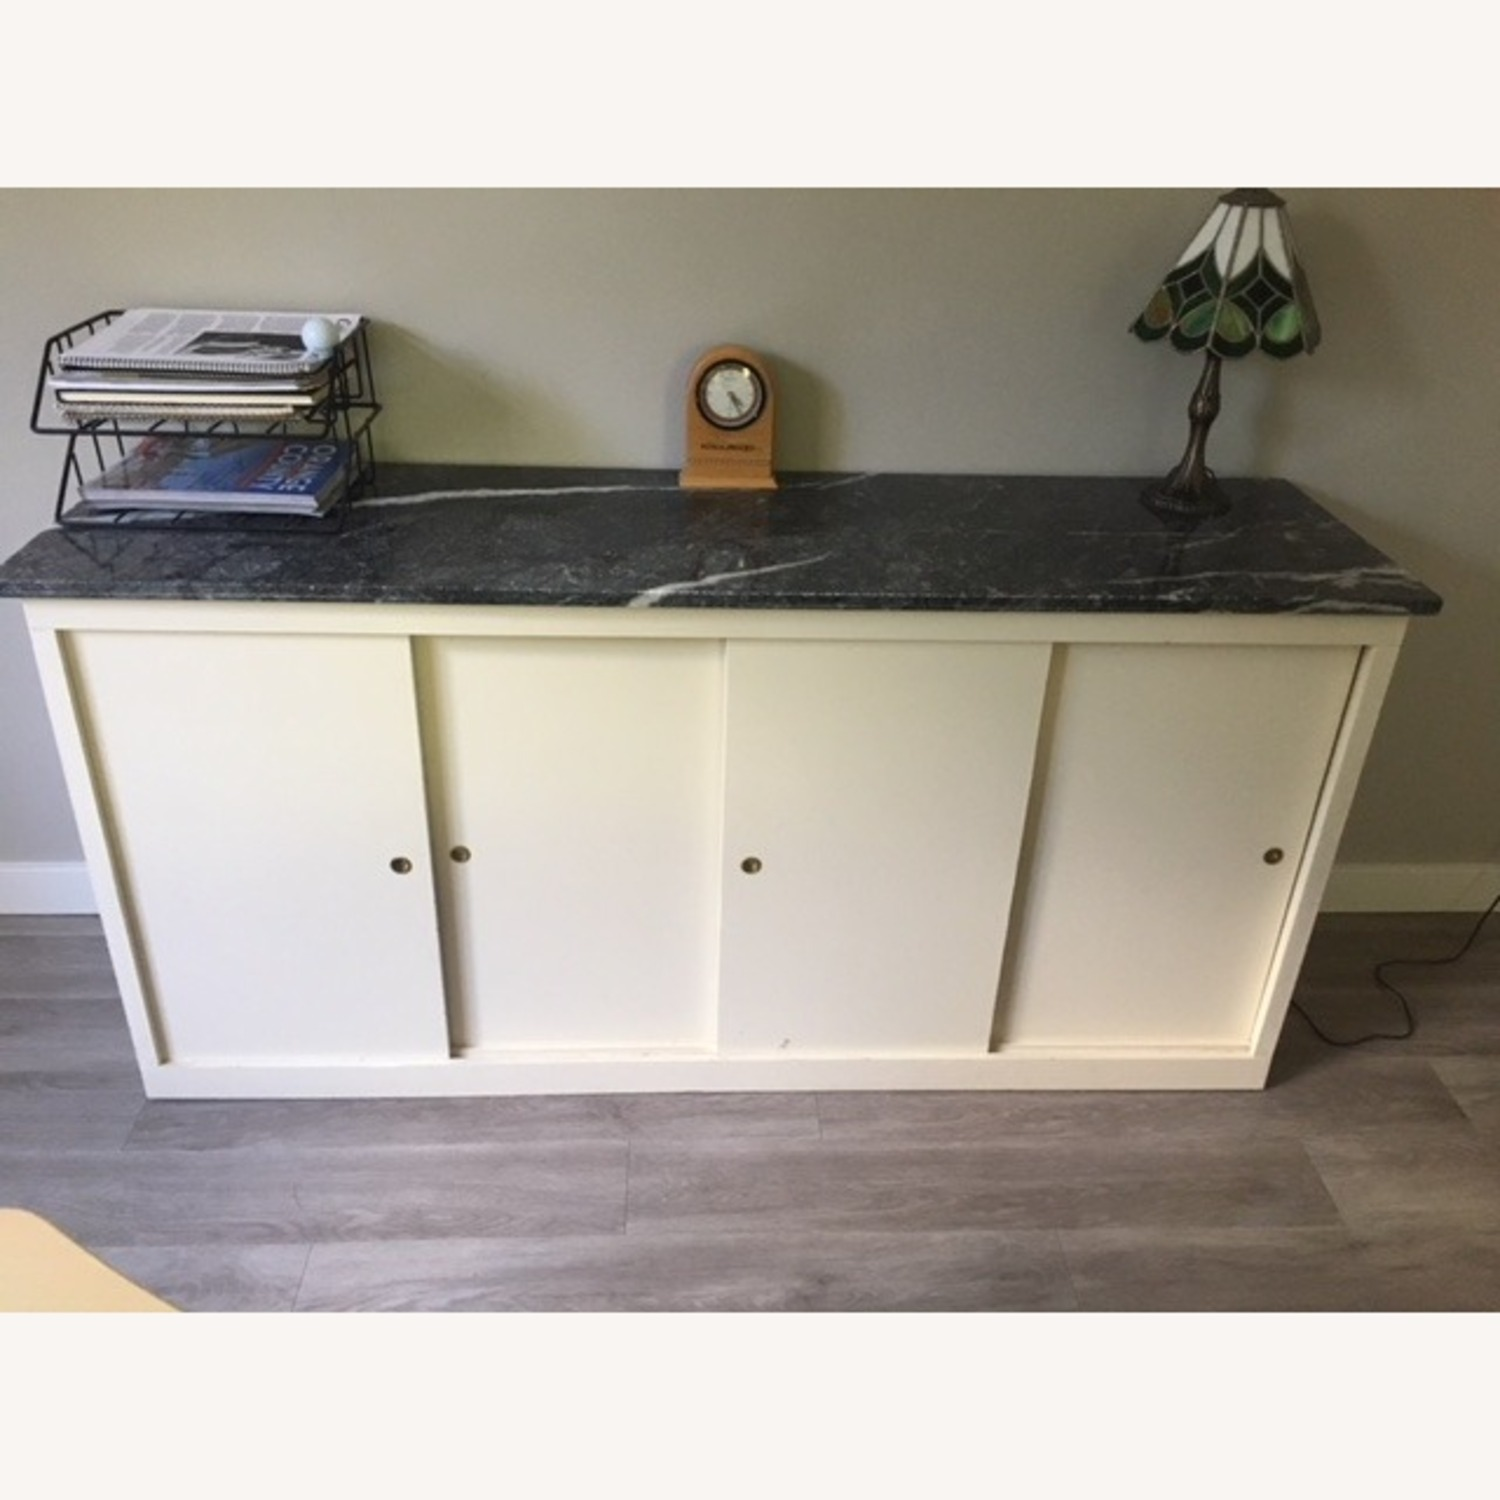 Office Storage Unit with Granite Counter Top - image-1